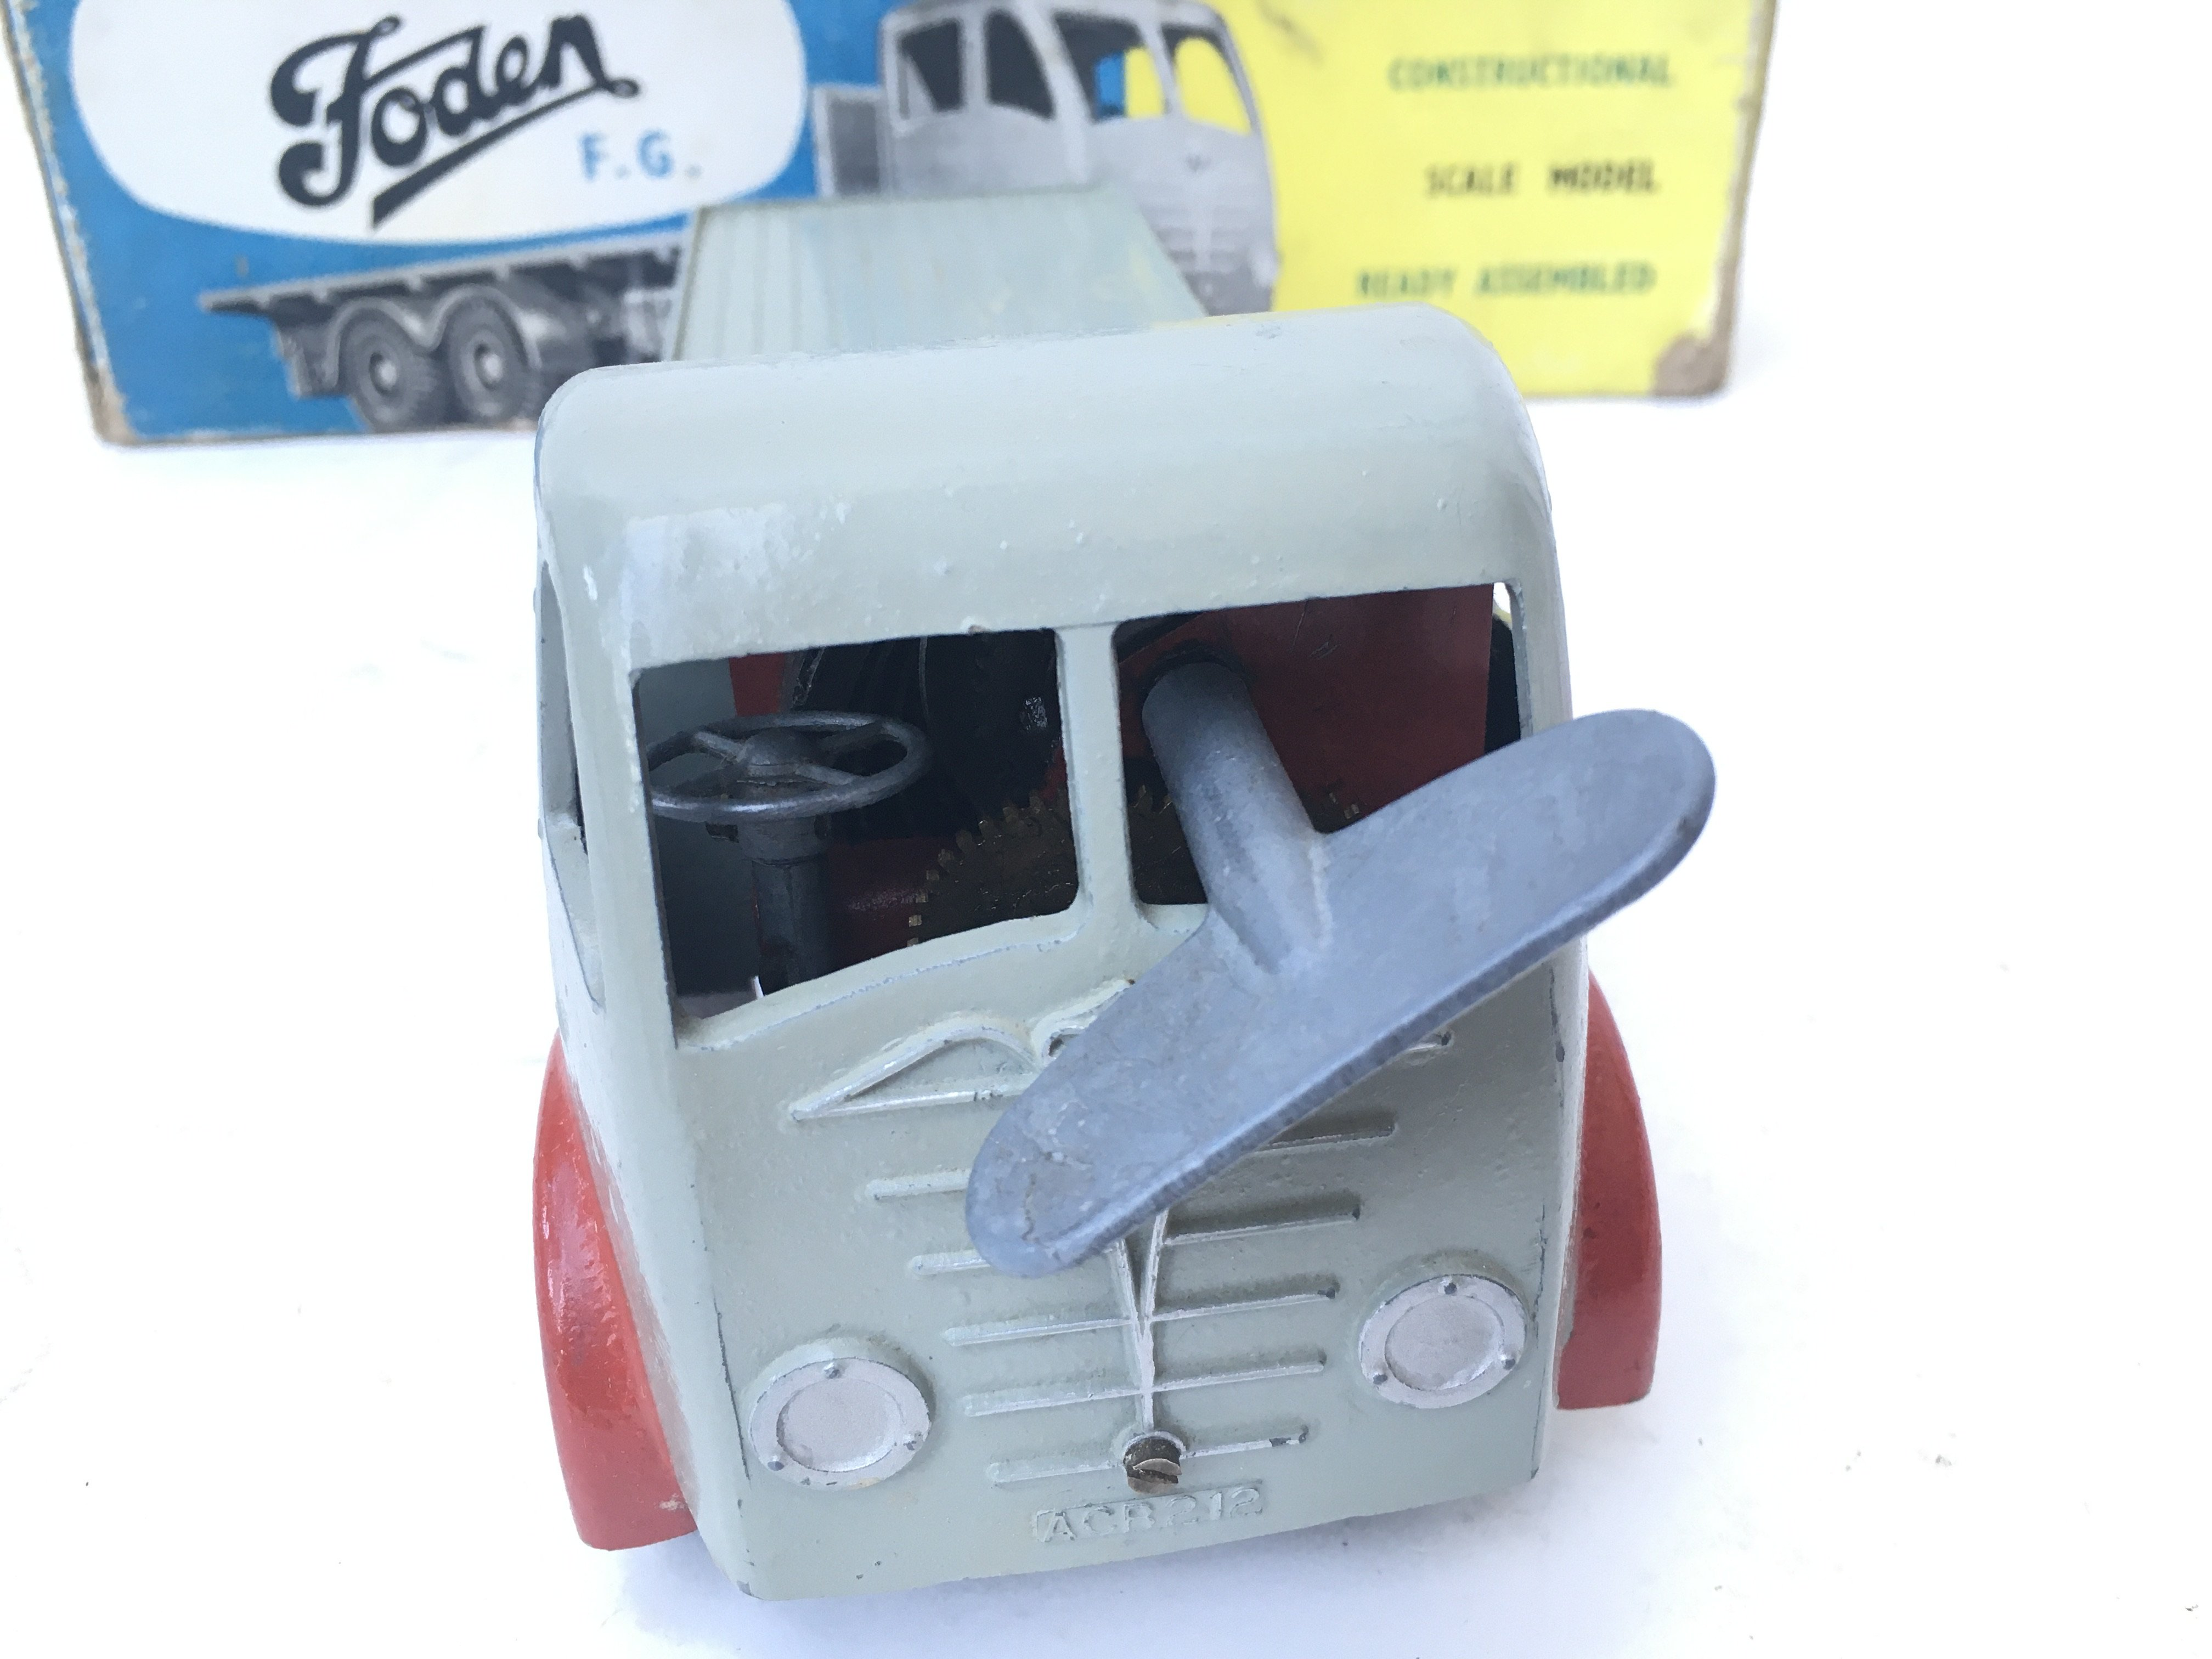 A Boxed Shackleton foden F.G Vehicle. With Key. - Image 4 of 4